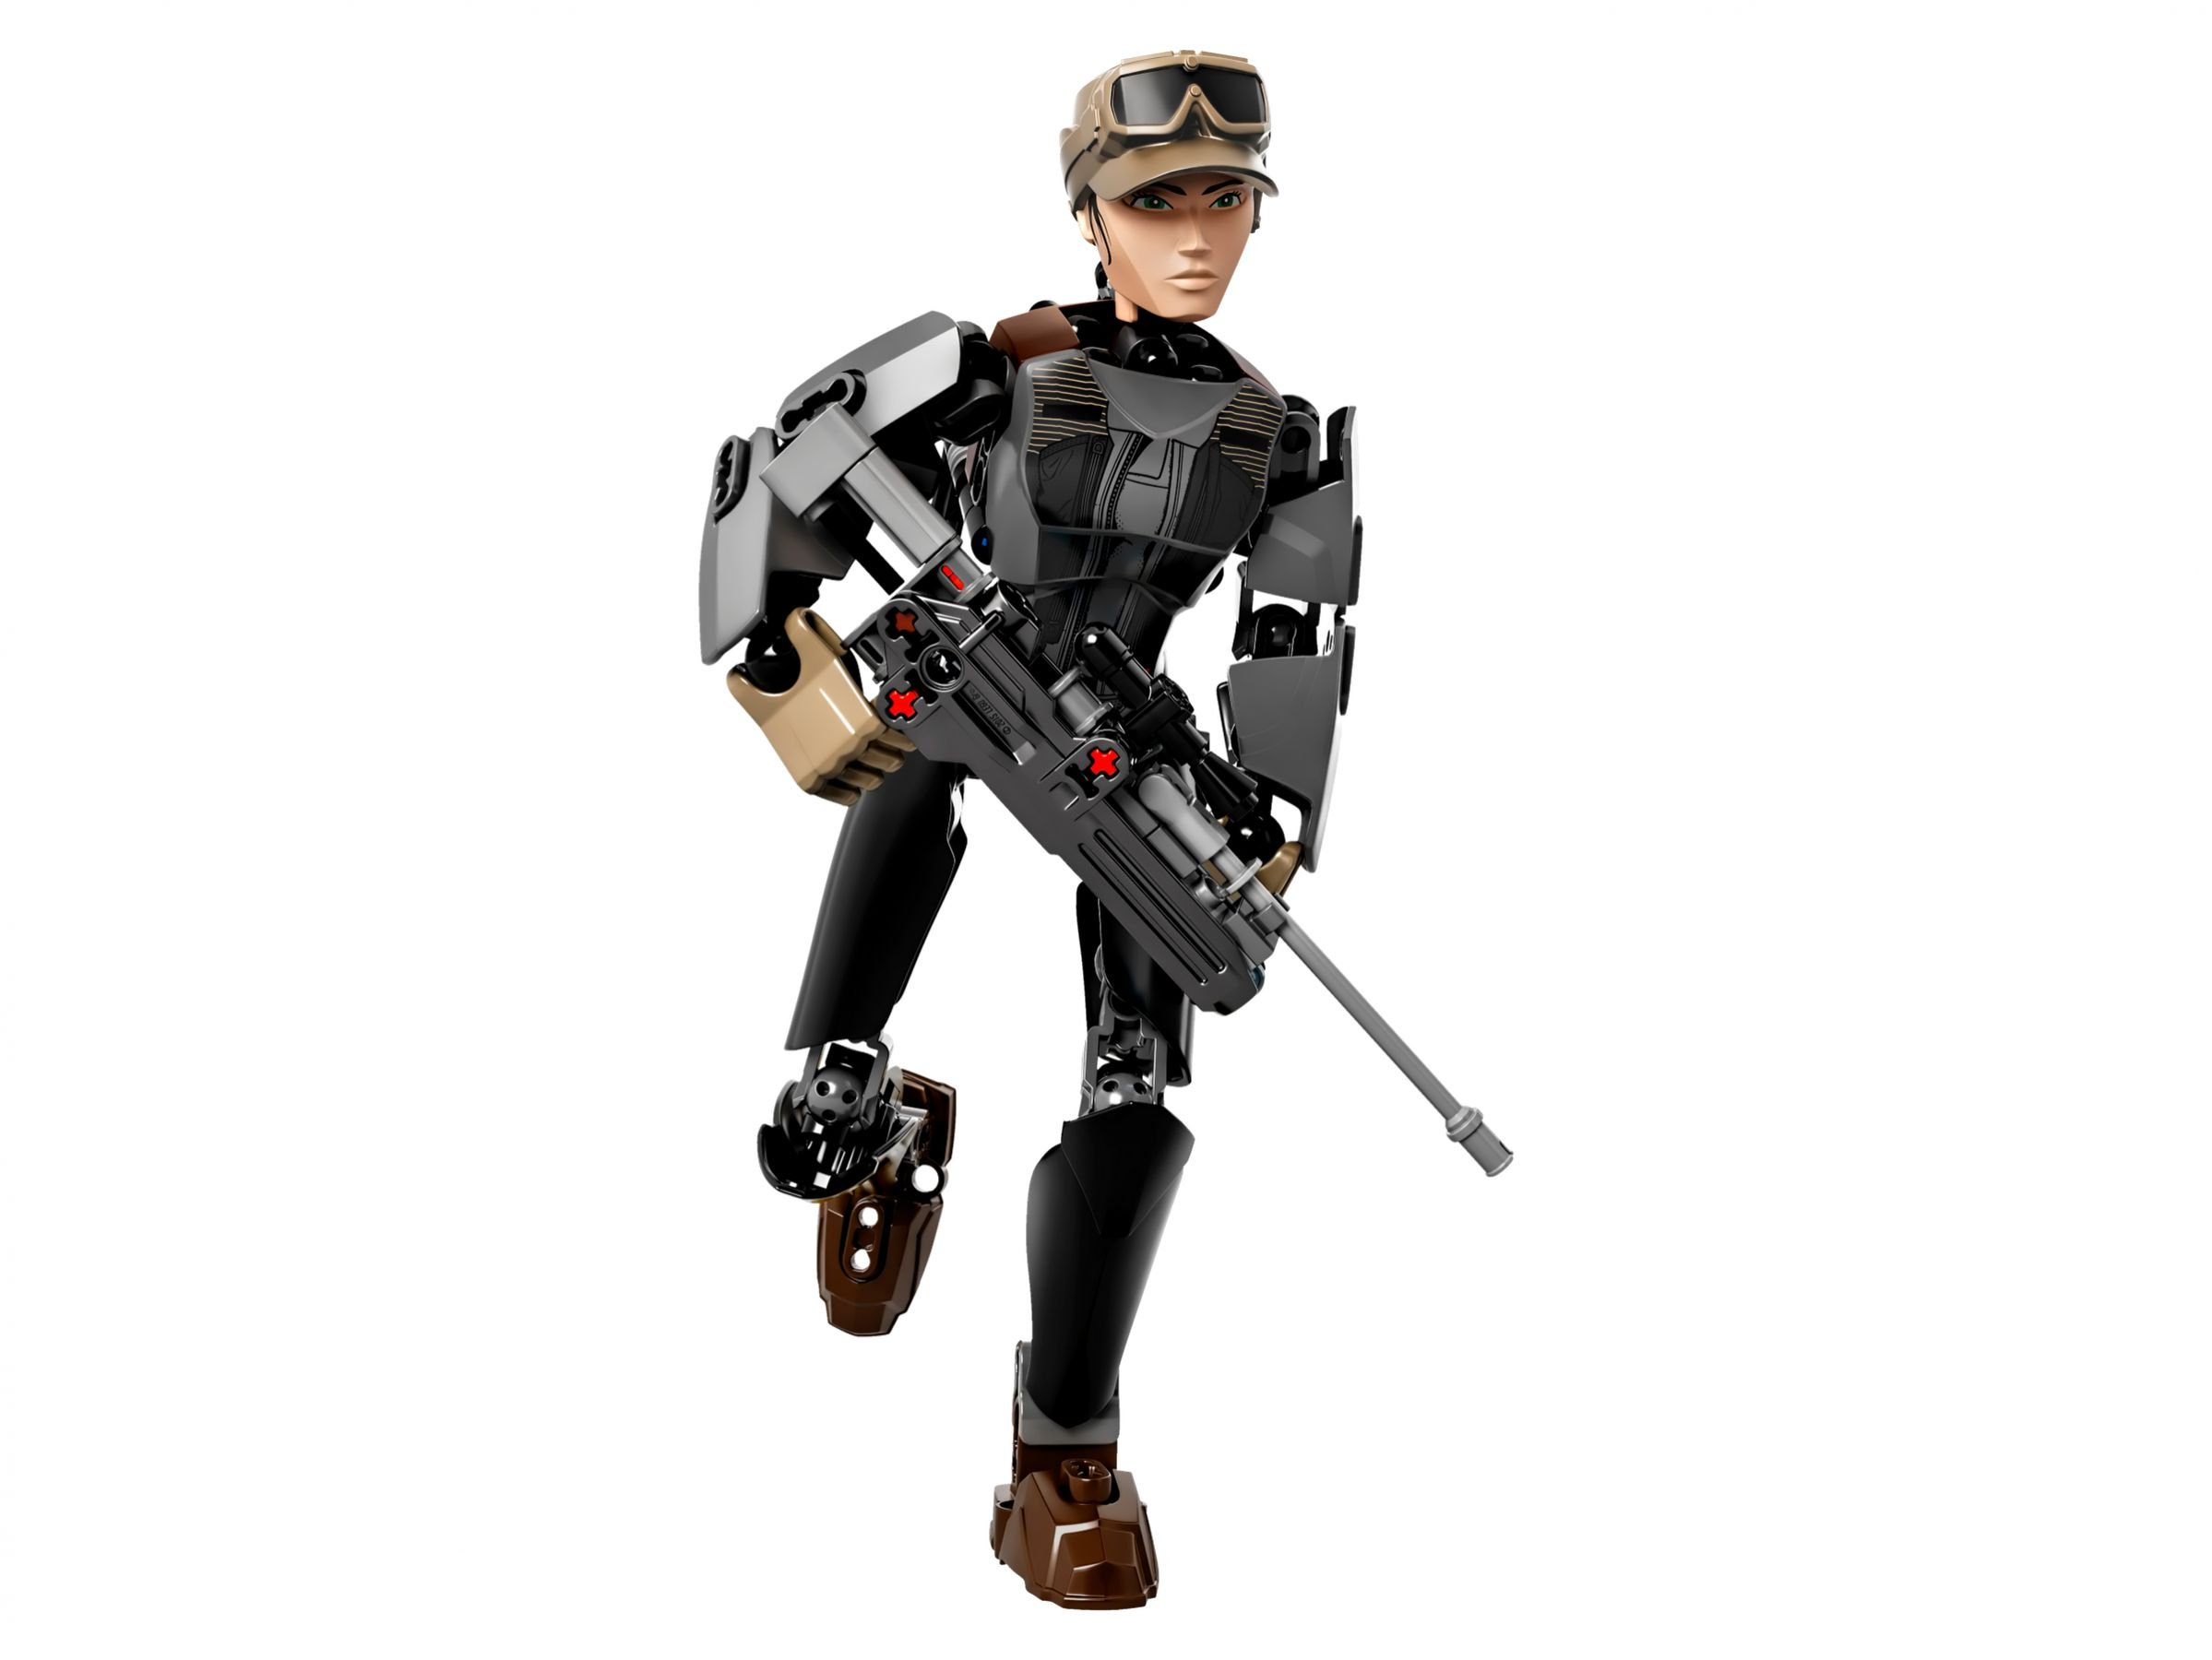 LEGO Star Wars Buildable Figures 75119 Sergeant Jyn Erso™